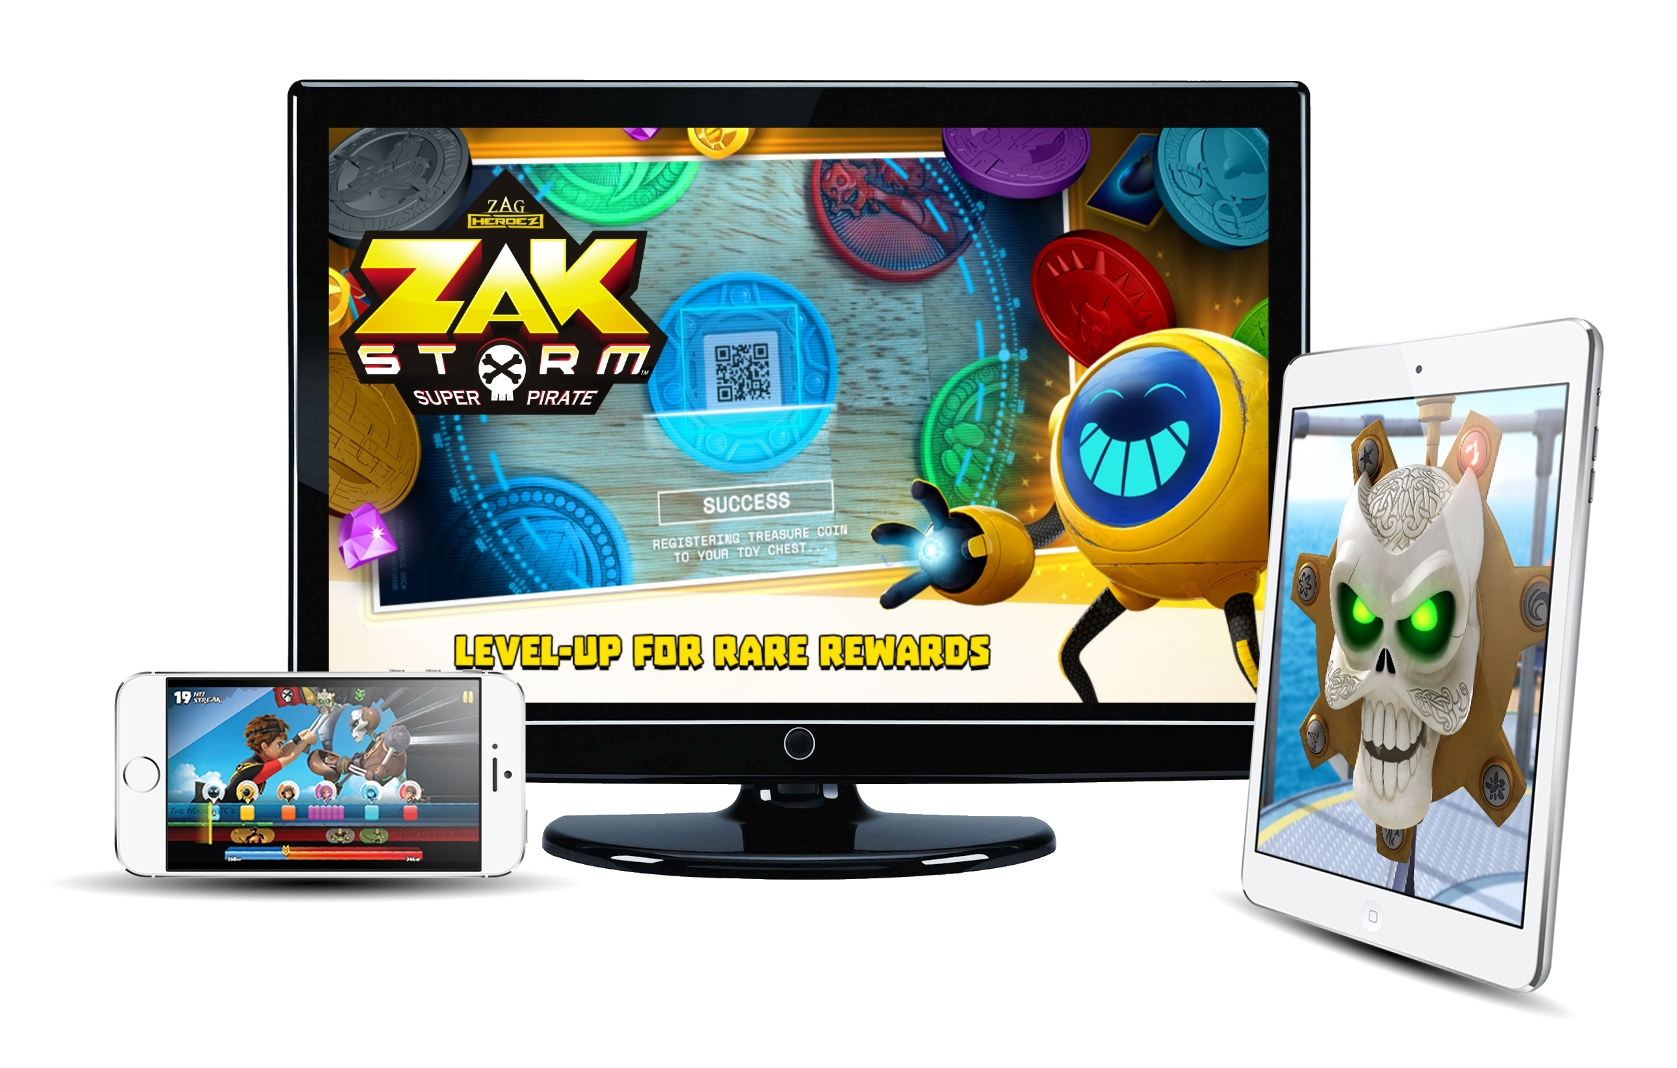 Zak Storm Trifecta Launch Image